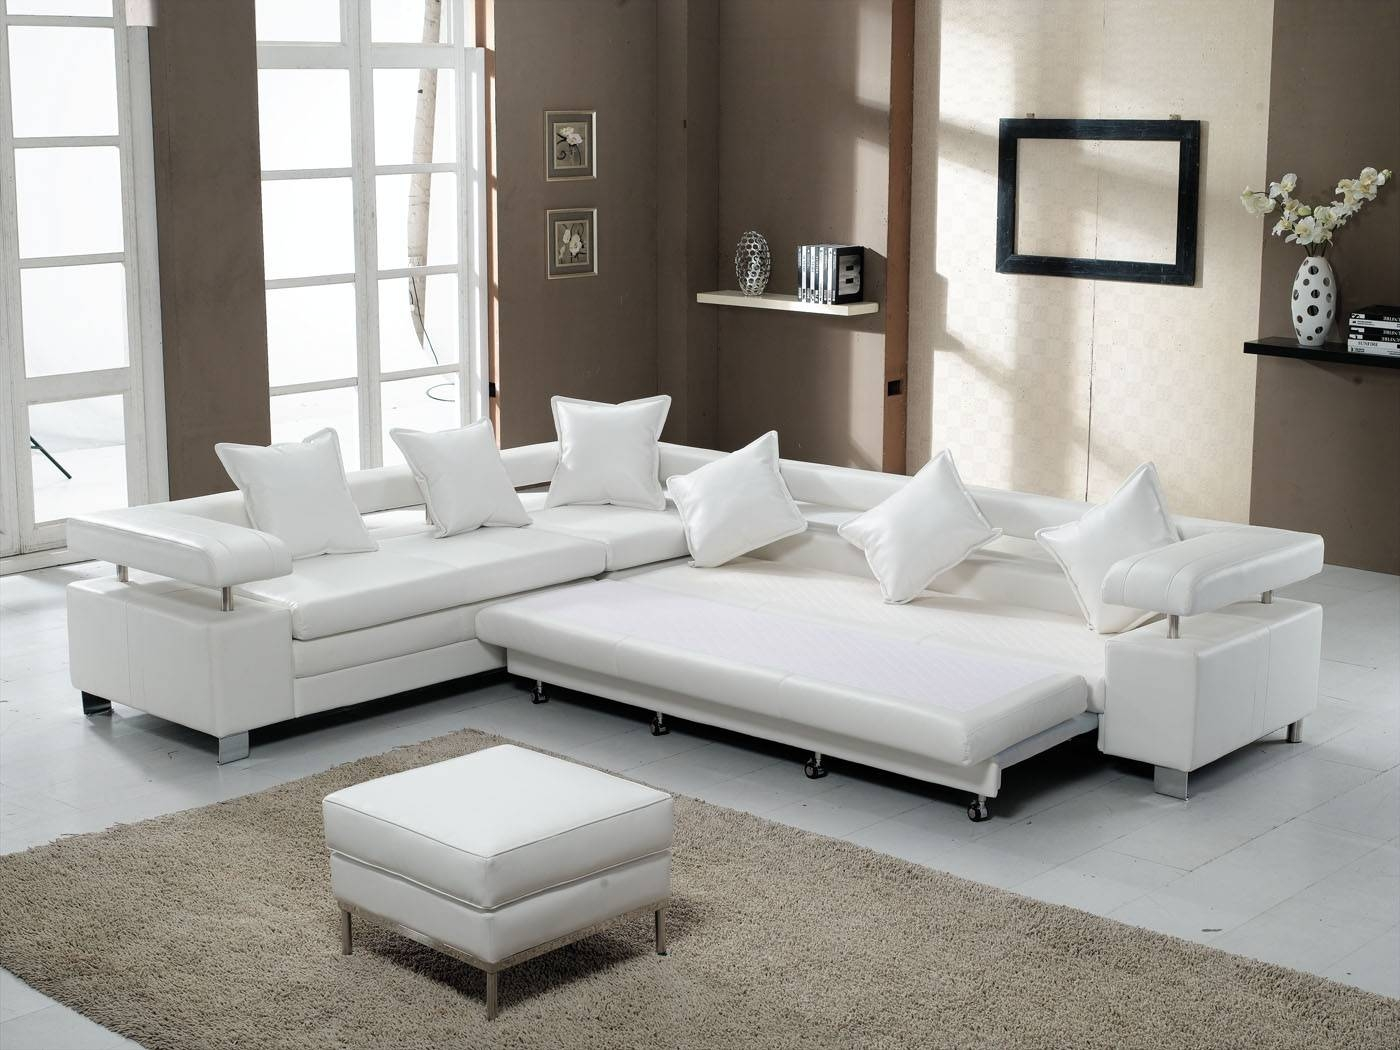 Sofas Center : White Sectional Sofas For Small Spaces Leterwhite inside White Sectional Sofa for Sale (Image 24 of 30)